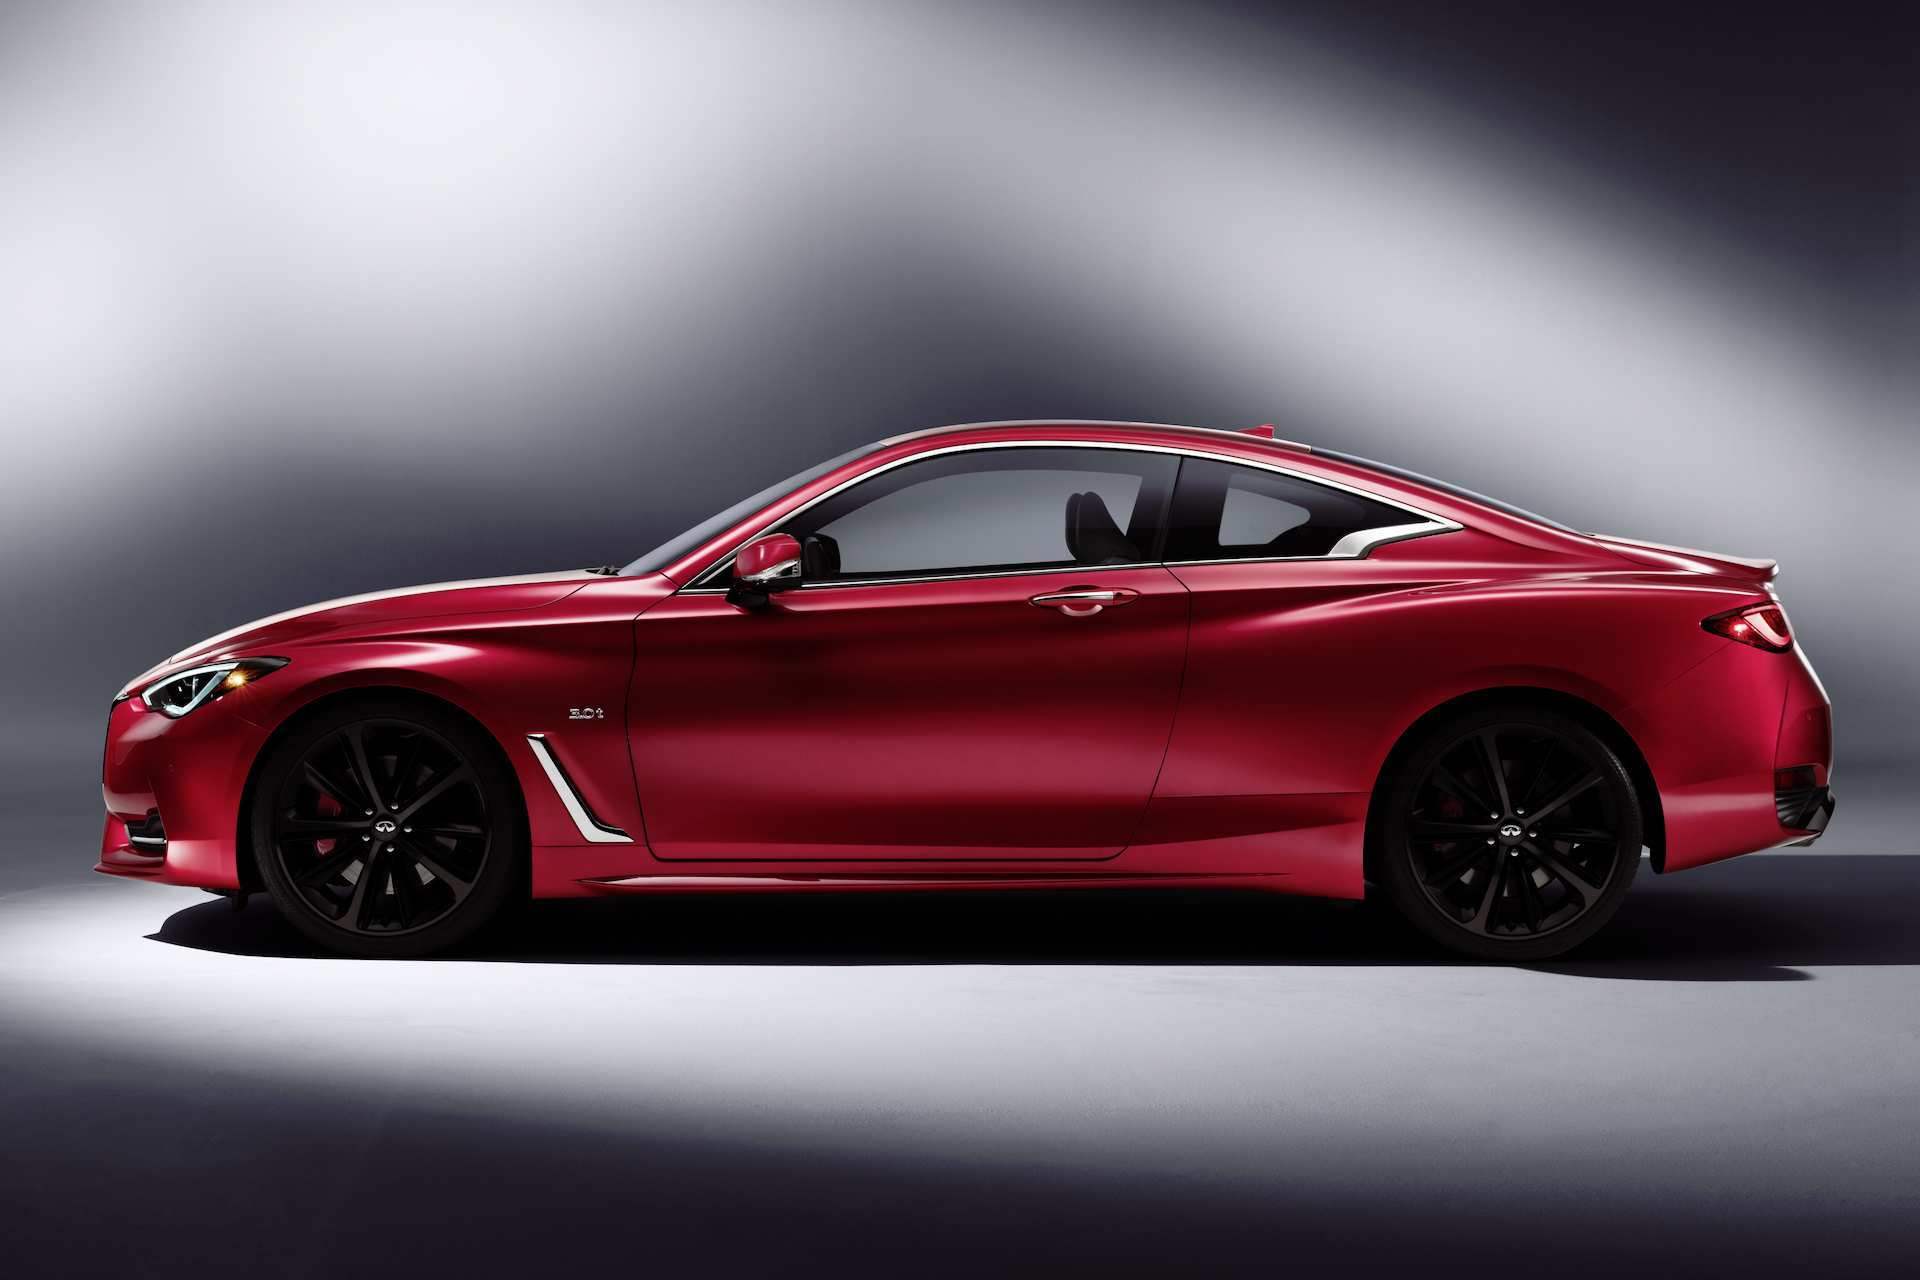 79 The 2020 Infiniti Q60 Coupe Convertible Pricing